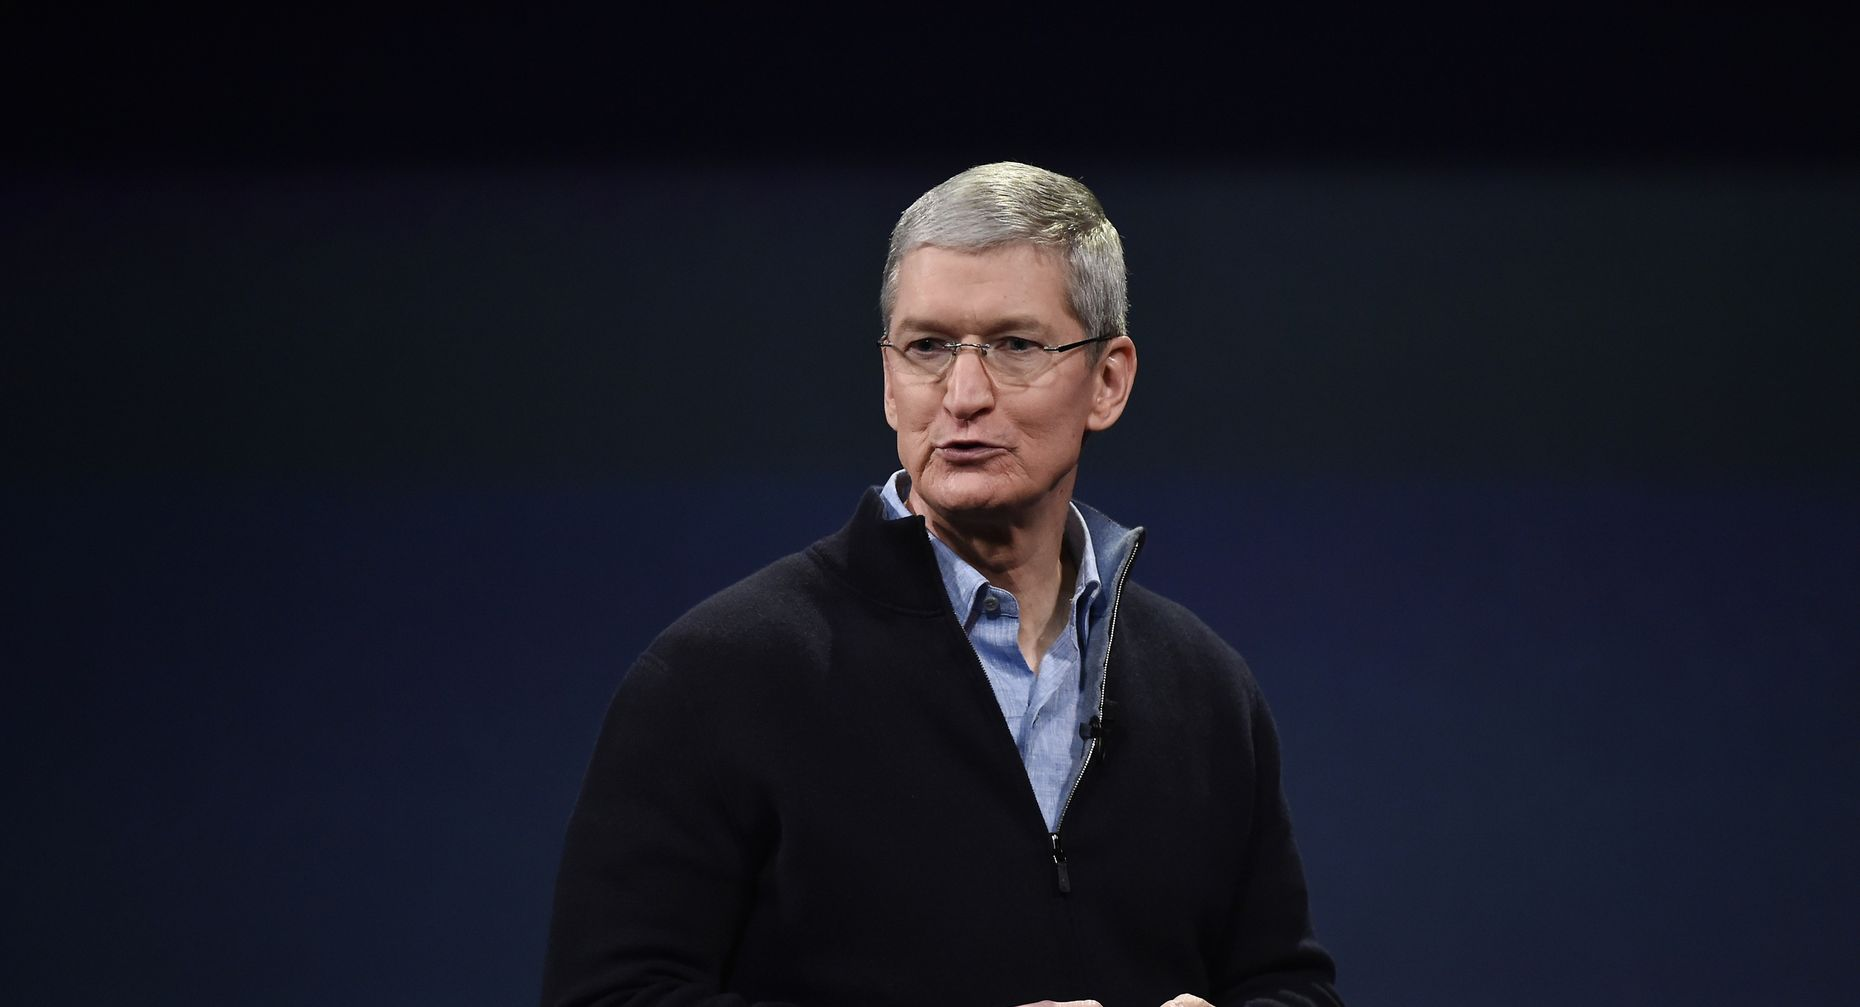 Apple CEO Tim Cook. Photo by Bloomberg.